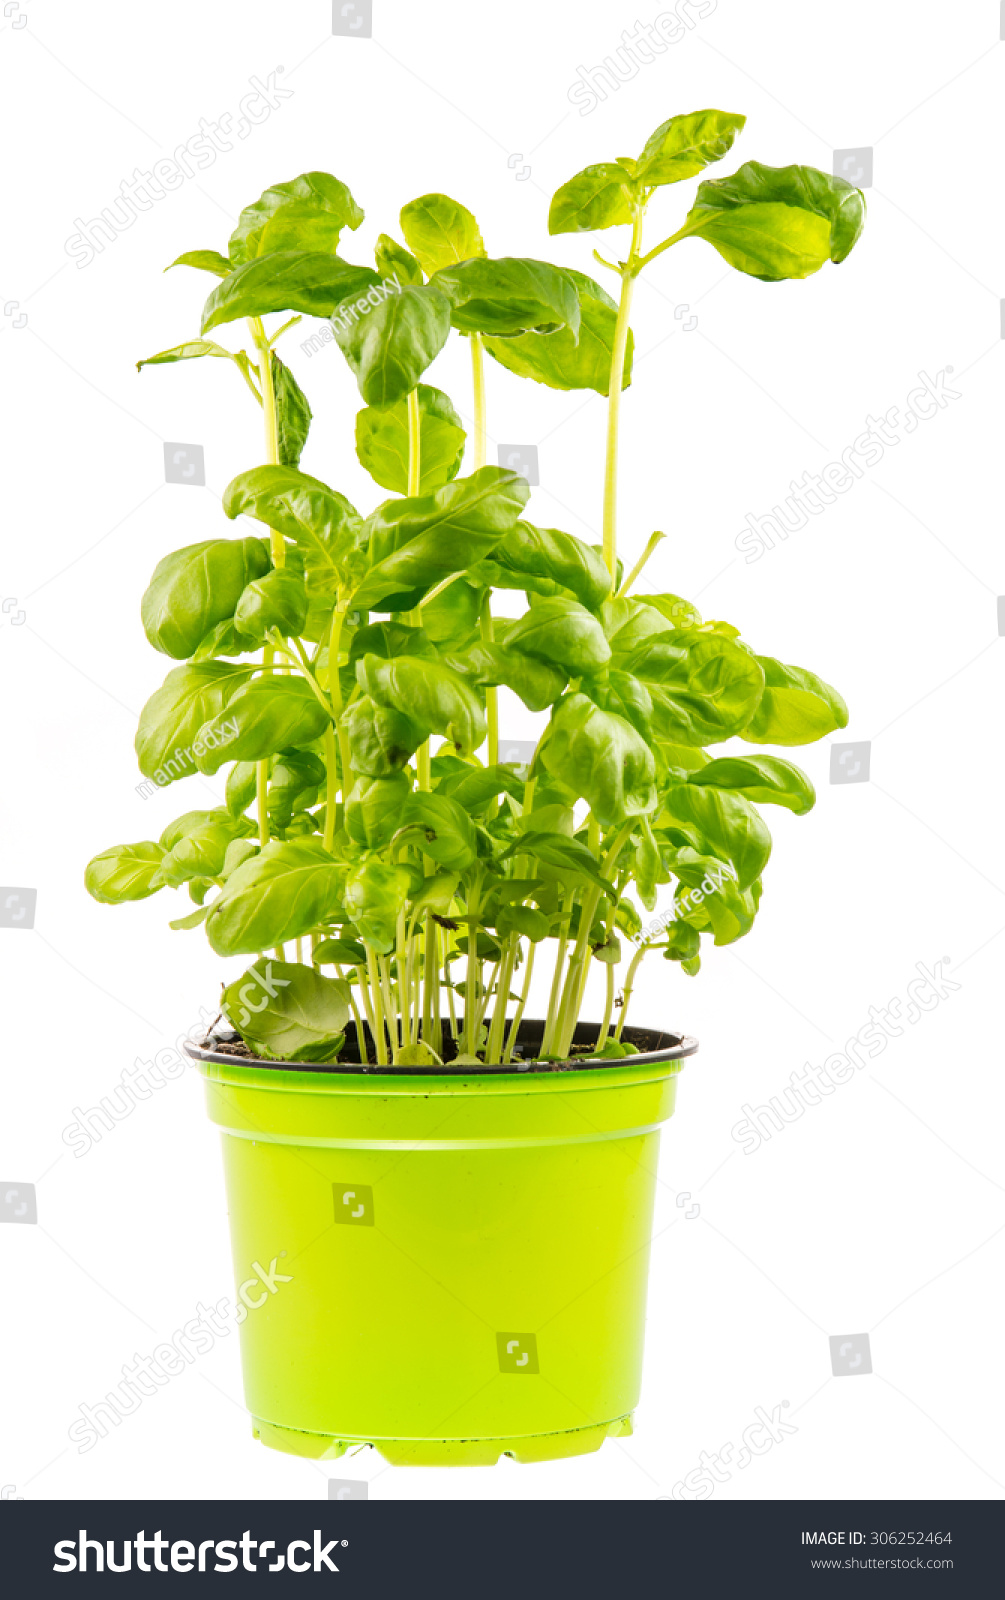 Isolated fresh basil plant in a flower pot stock photo 306252464 shutterstock - Aromatic herbs pots multiple benefits ...